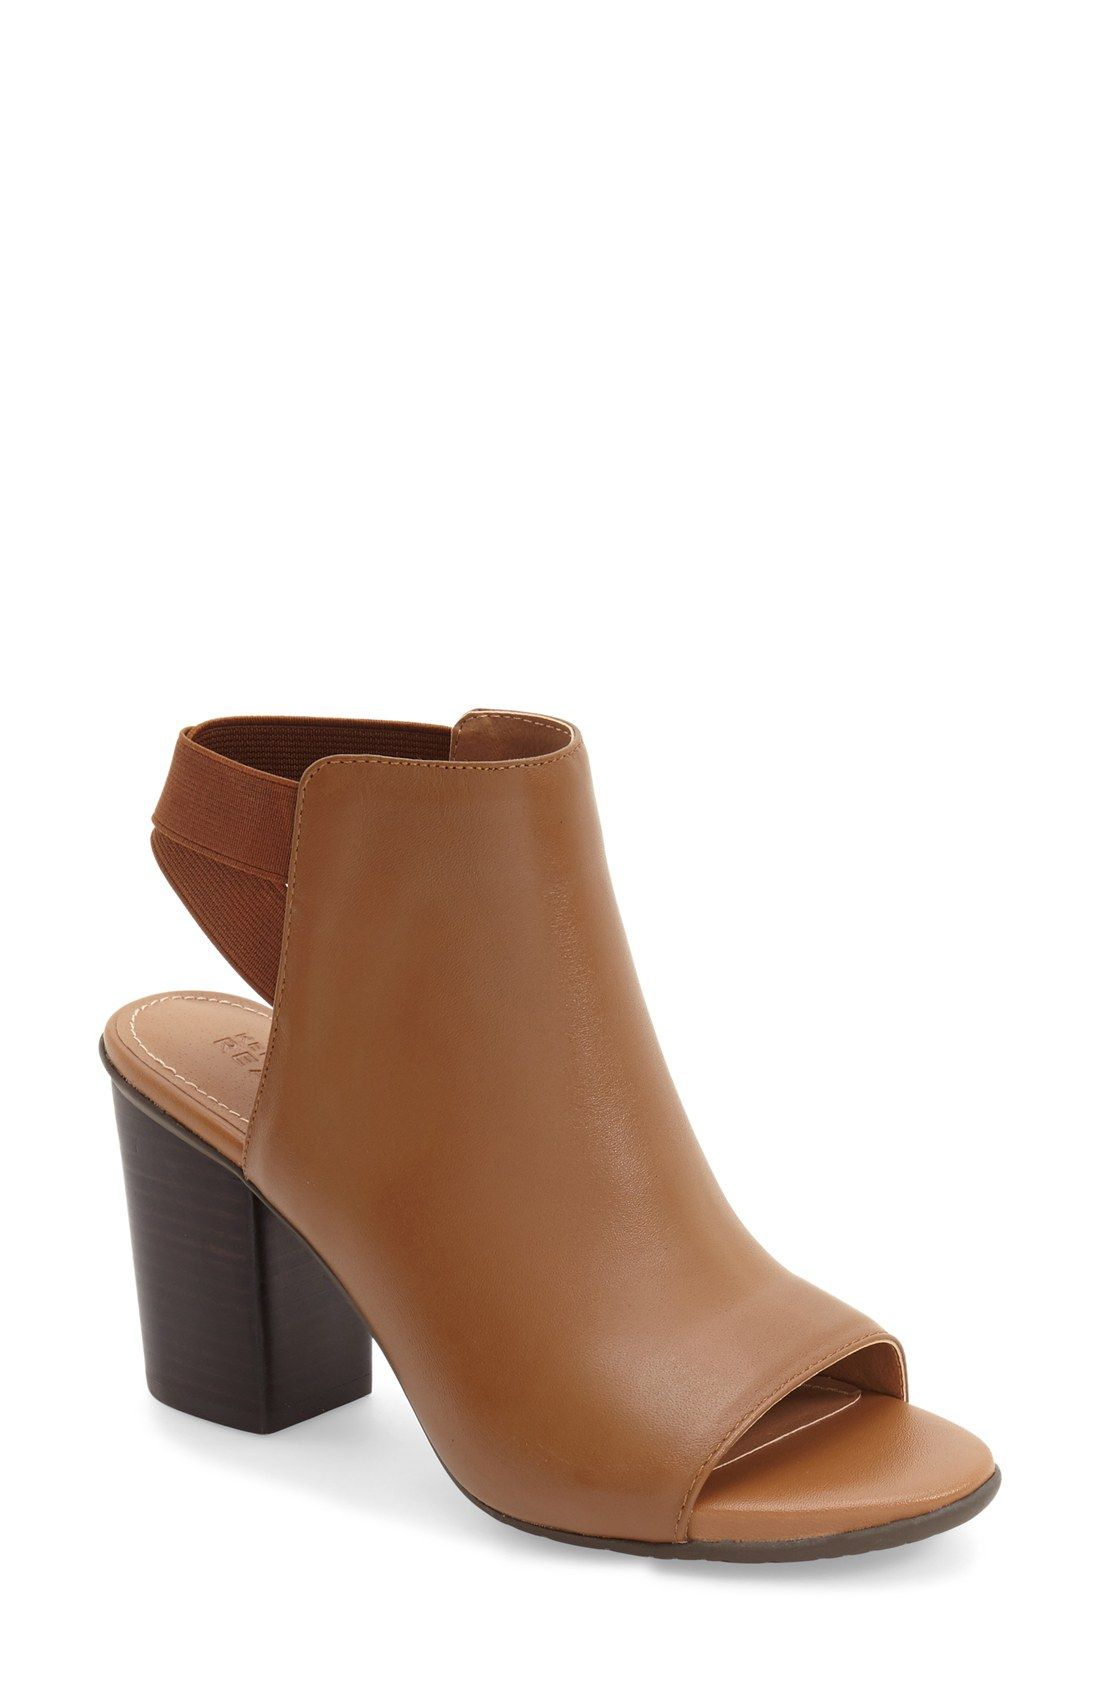 Kenneth Cole Reaction Fridah Fly Open Toe Bootie (Women's) i0UCYH35zw